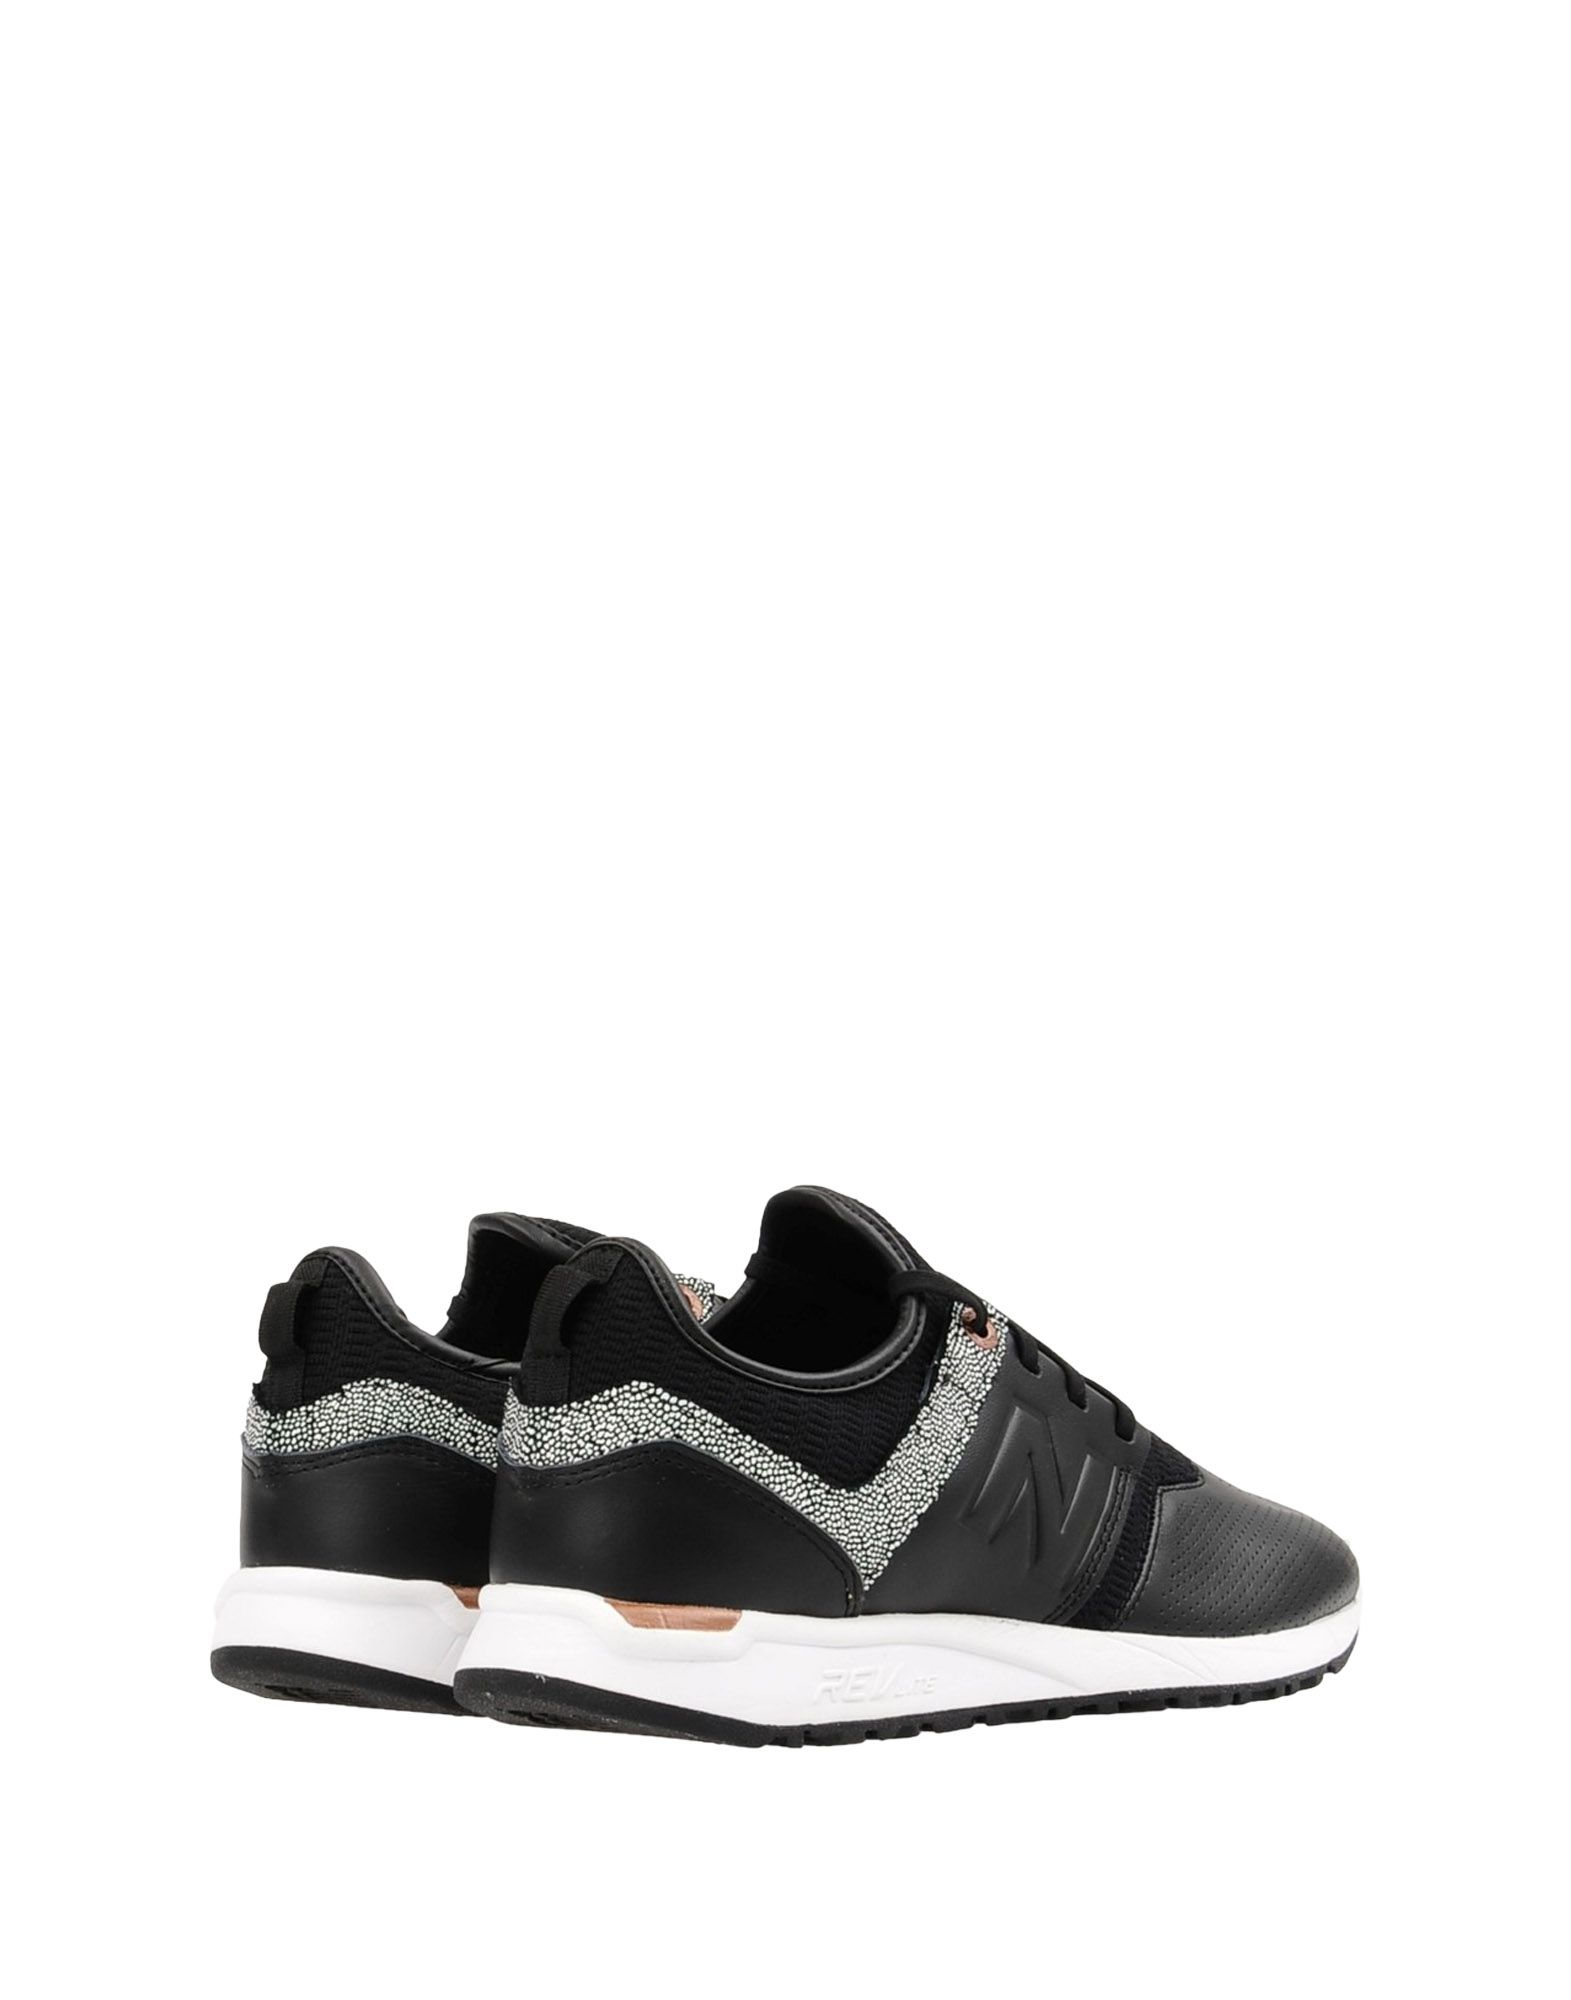 Sneakers New Balance 247 Grey Pack - Femme - Sneakers New Balance sur